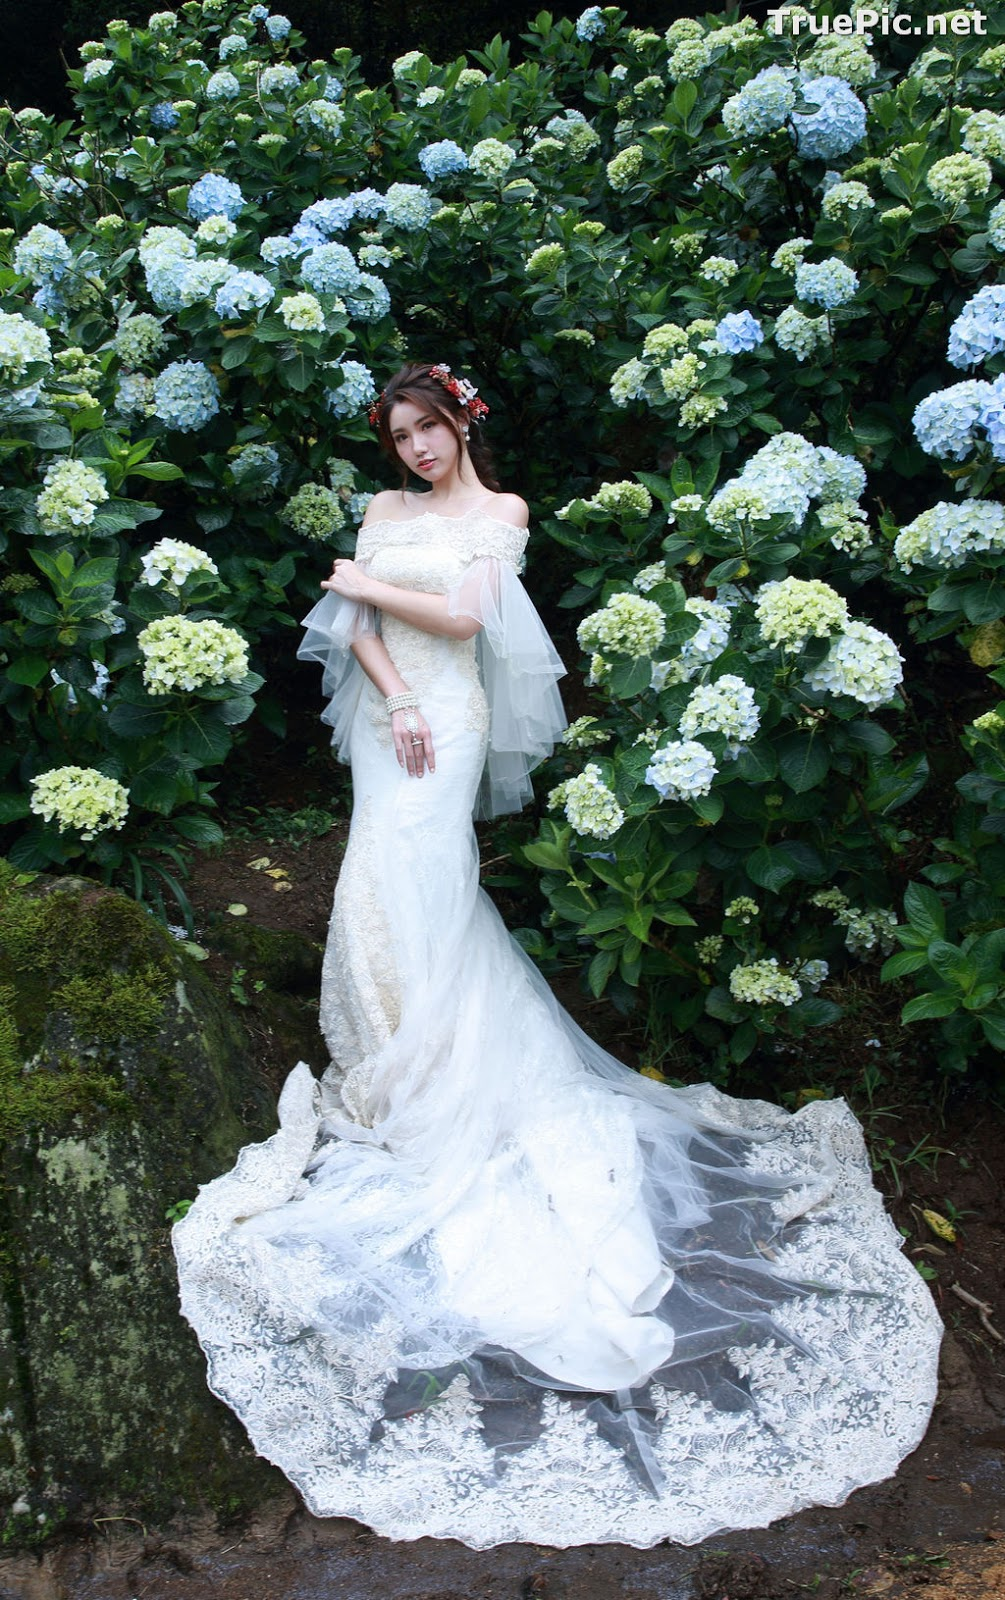 Image Taiwanese Model - 張倫甄 - Beautiful Bride and Hydrangea Flowers - TruePic.net - Picture-3